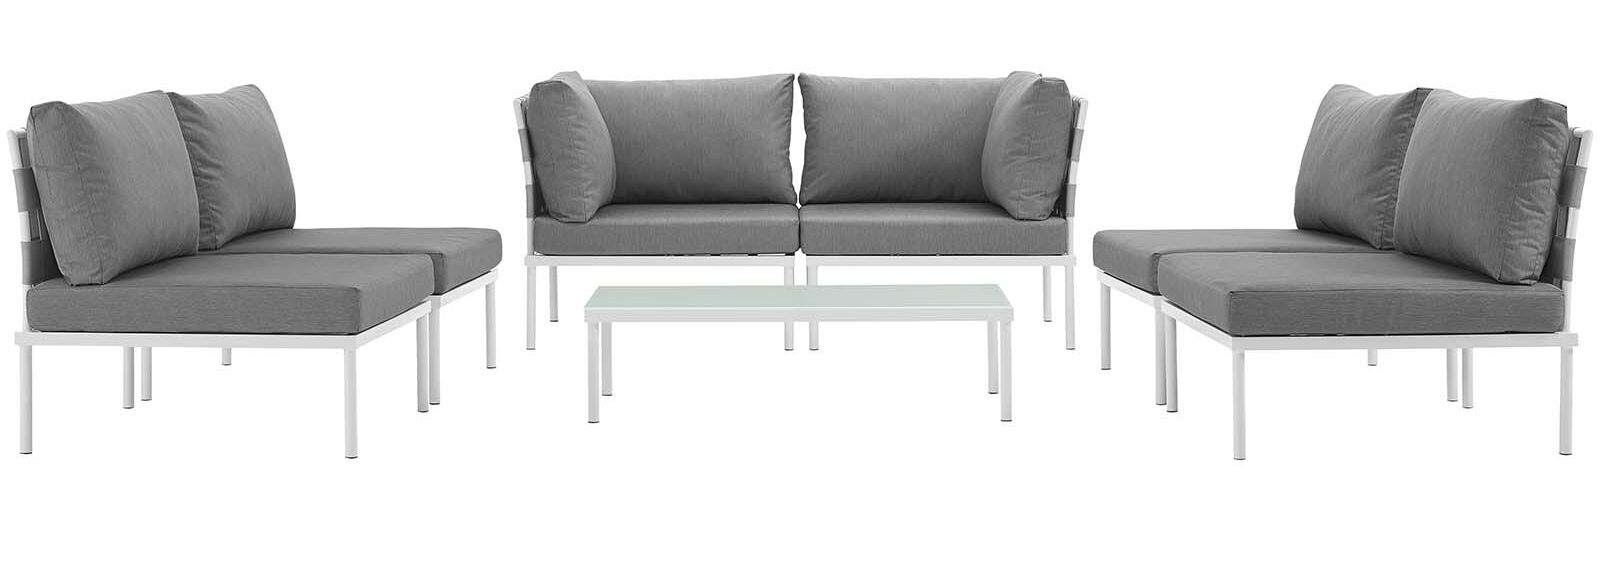 Darnell 7 Piece Sofa Set with Cushions Fabric: Gray